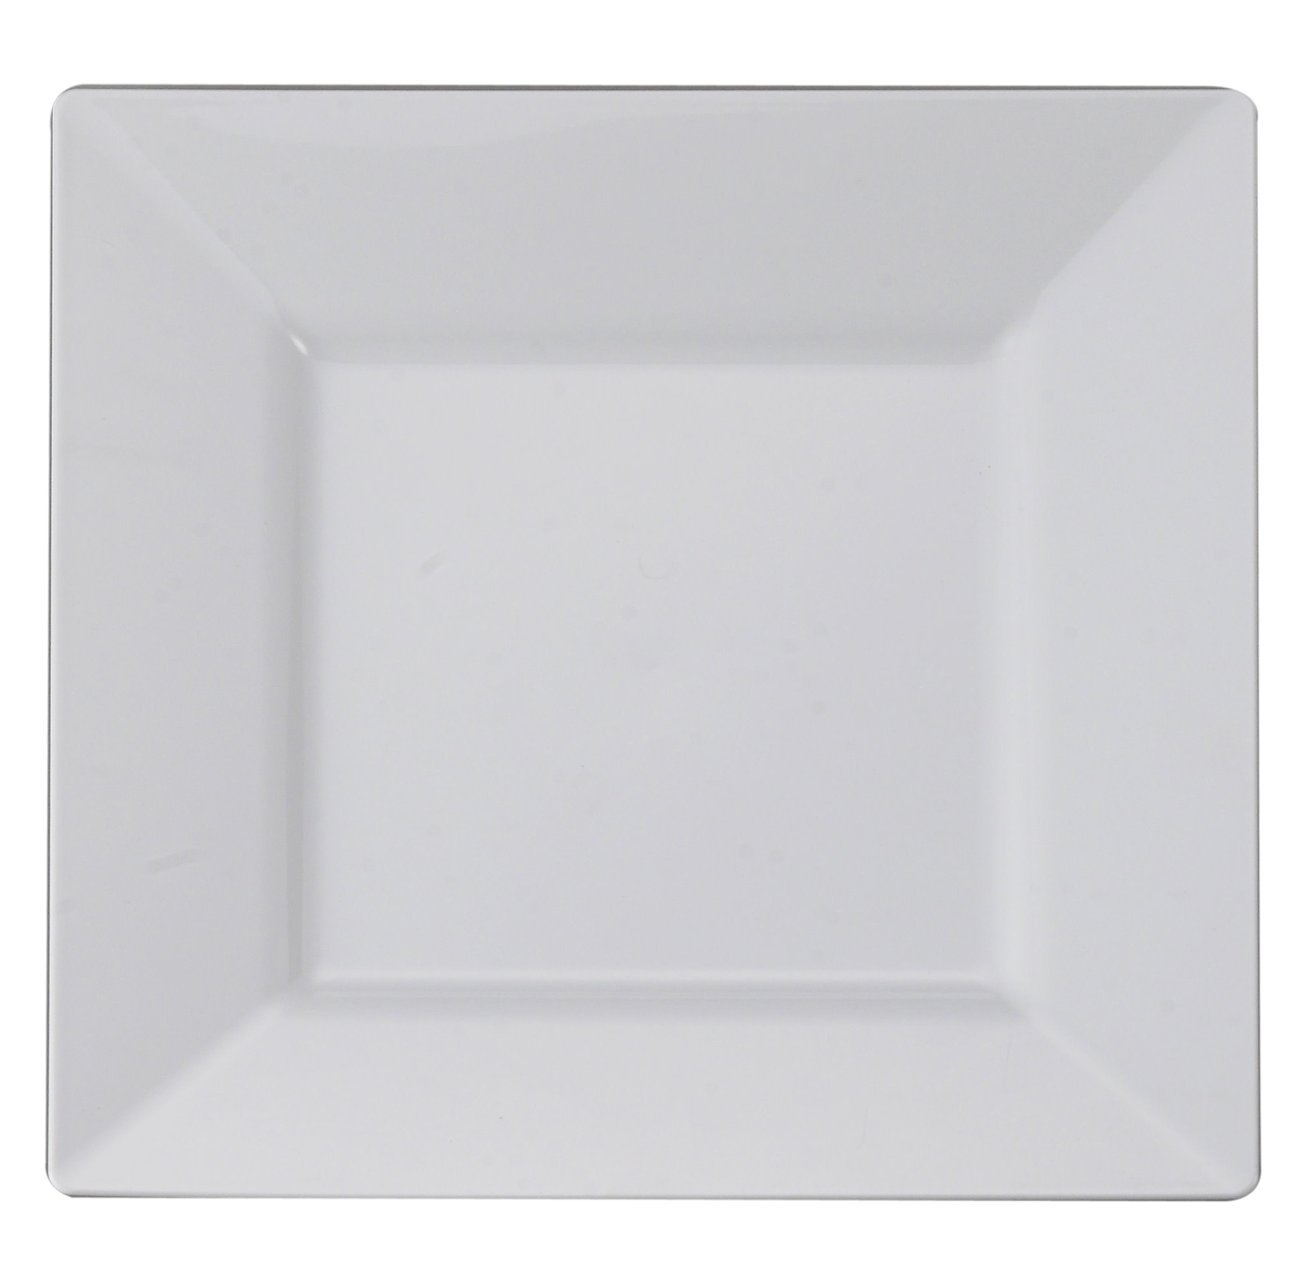 Kaya Collection - White Plastic Square 6.5'' Salad/Dessert Plates - Disposable or Reusable - 2 Pack (20 Plates)